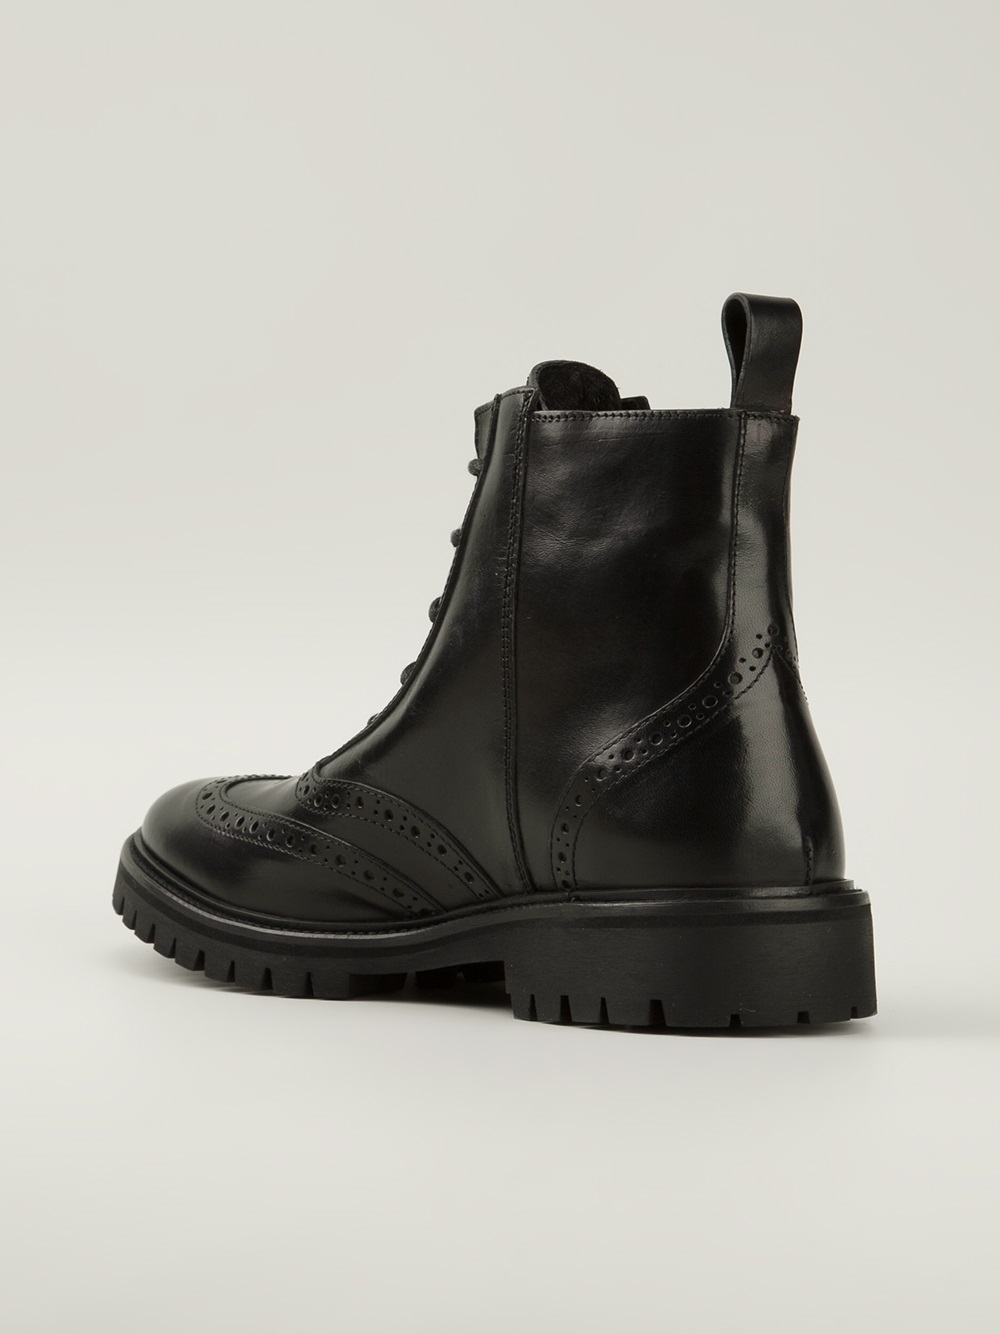 Diesel Black Gold Chief Boots In Black For Men Lyst